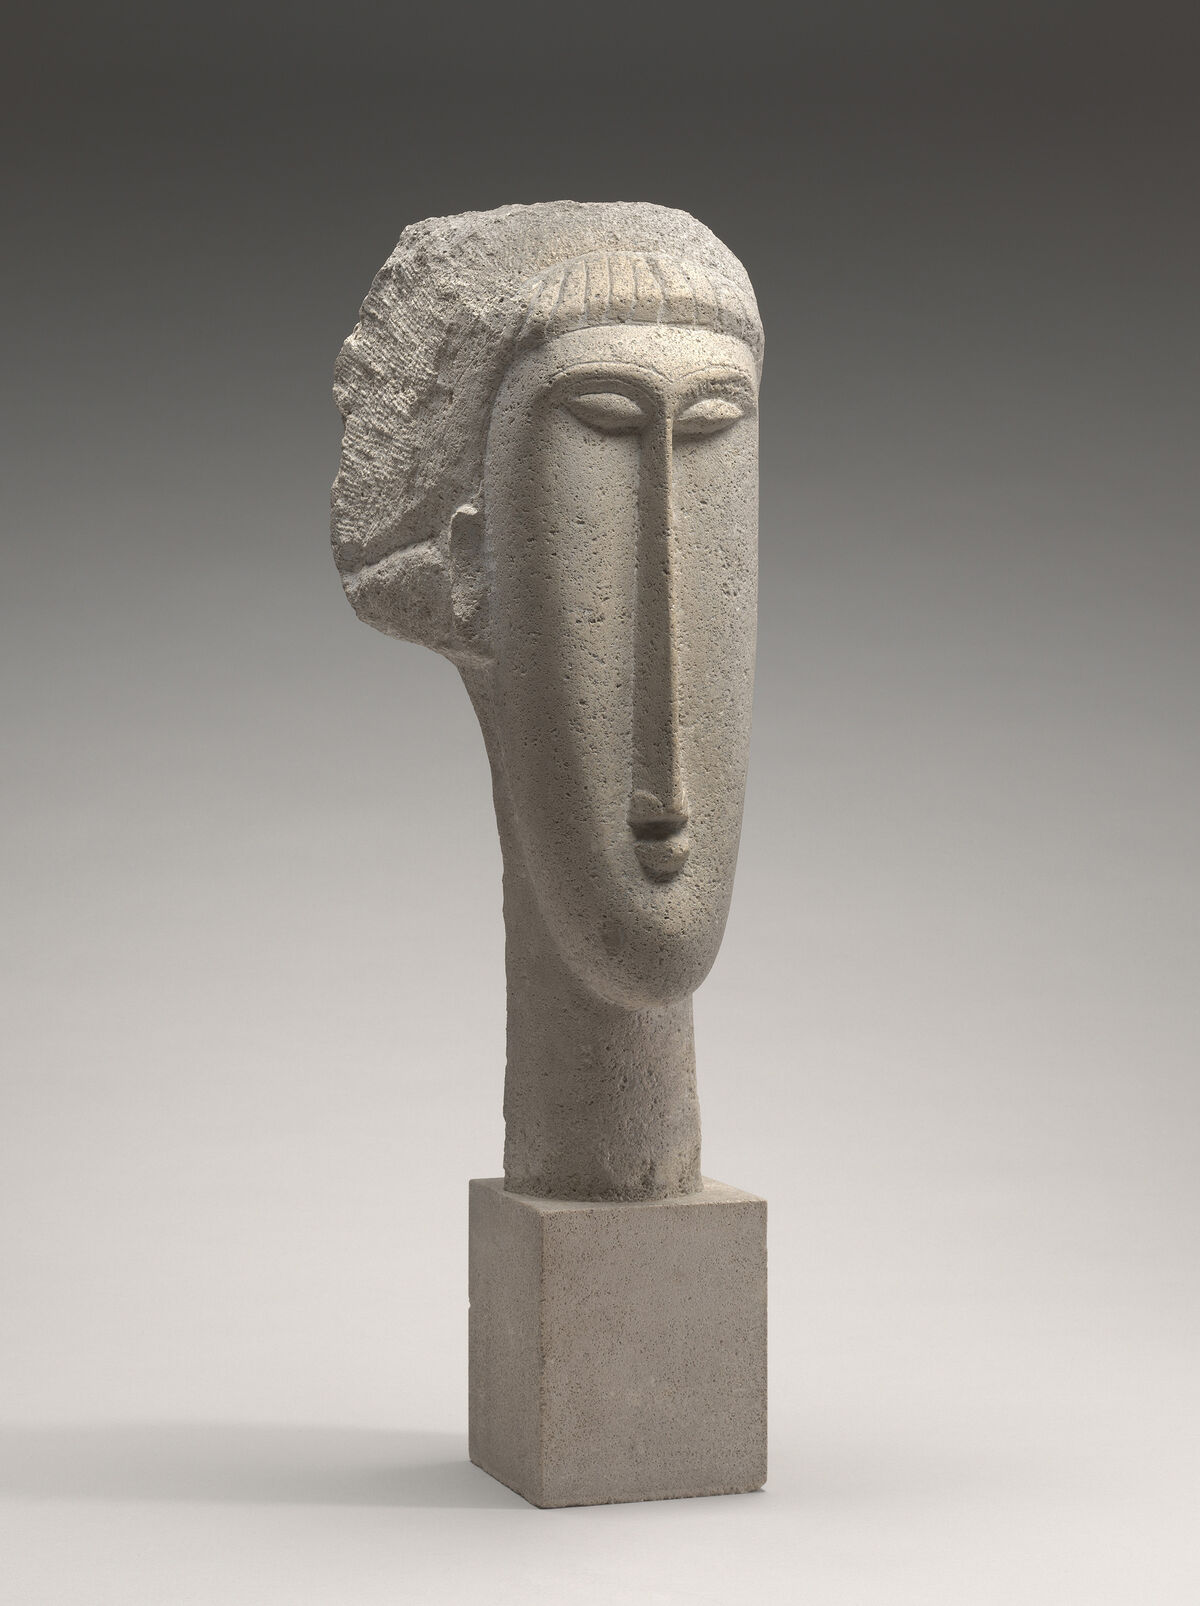 Amedeo Modigliani, Head of a Woman, 1910-11. National Gallery of Art, Washington, DC, Chester Dale Collection. Courtesy of the Jewish Museum.